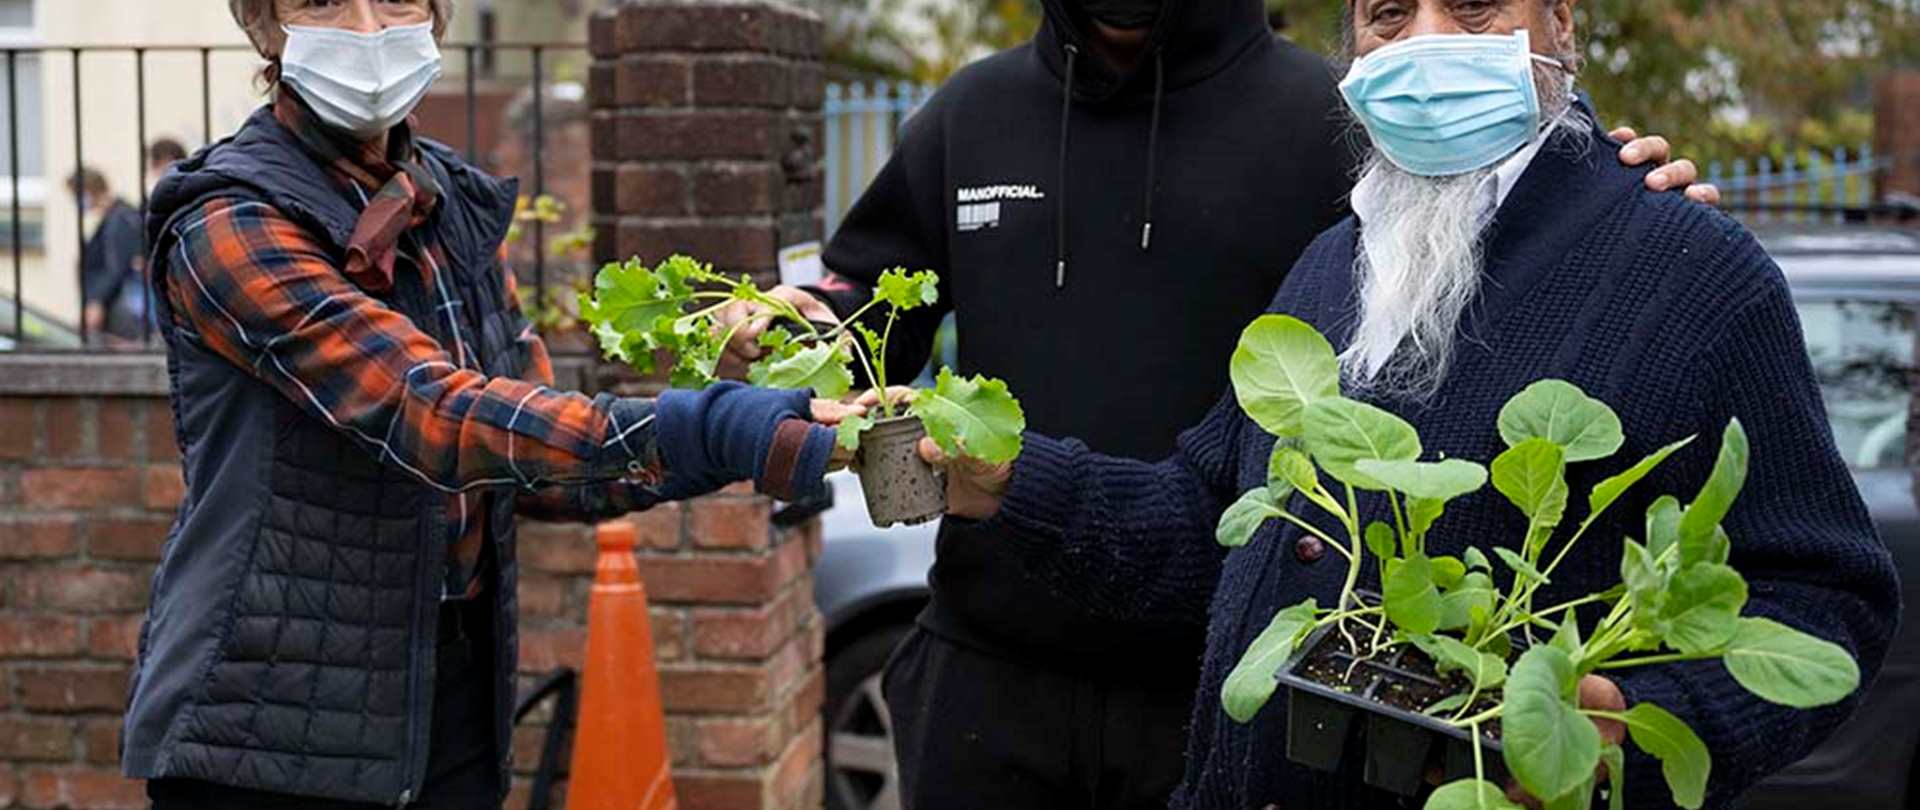 Three people sharing plants wearing Covid-19 safe masks